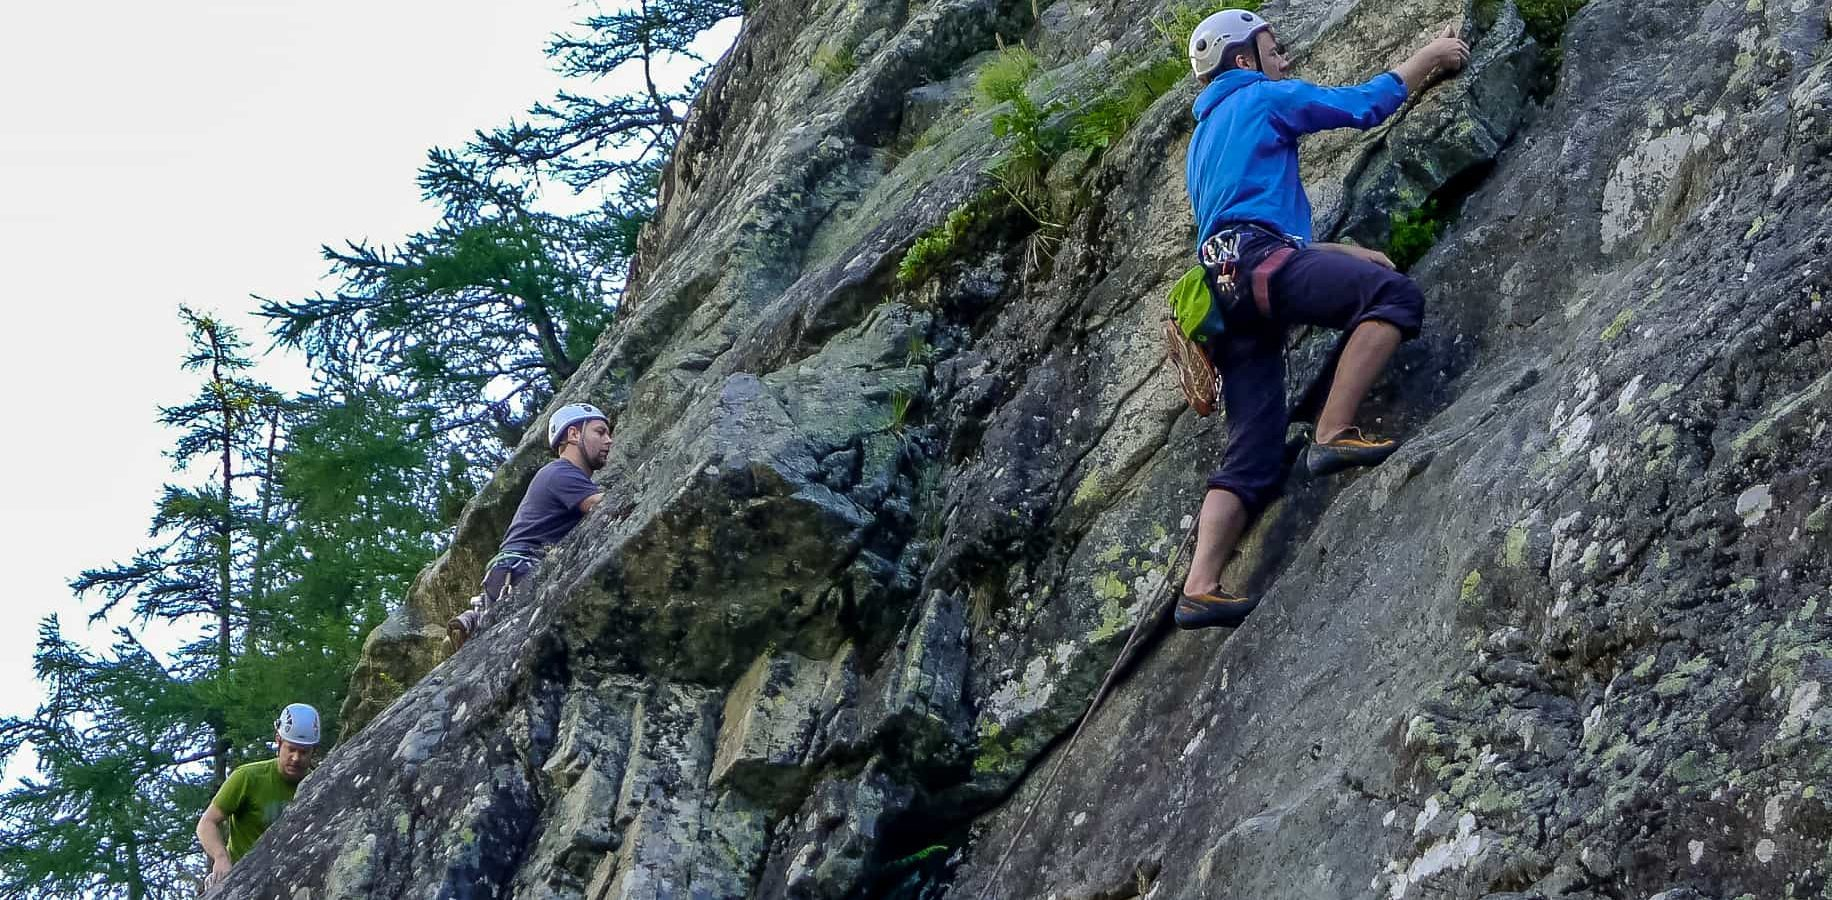 Cannoying and Rock Climbing in Nepal